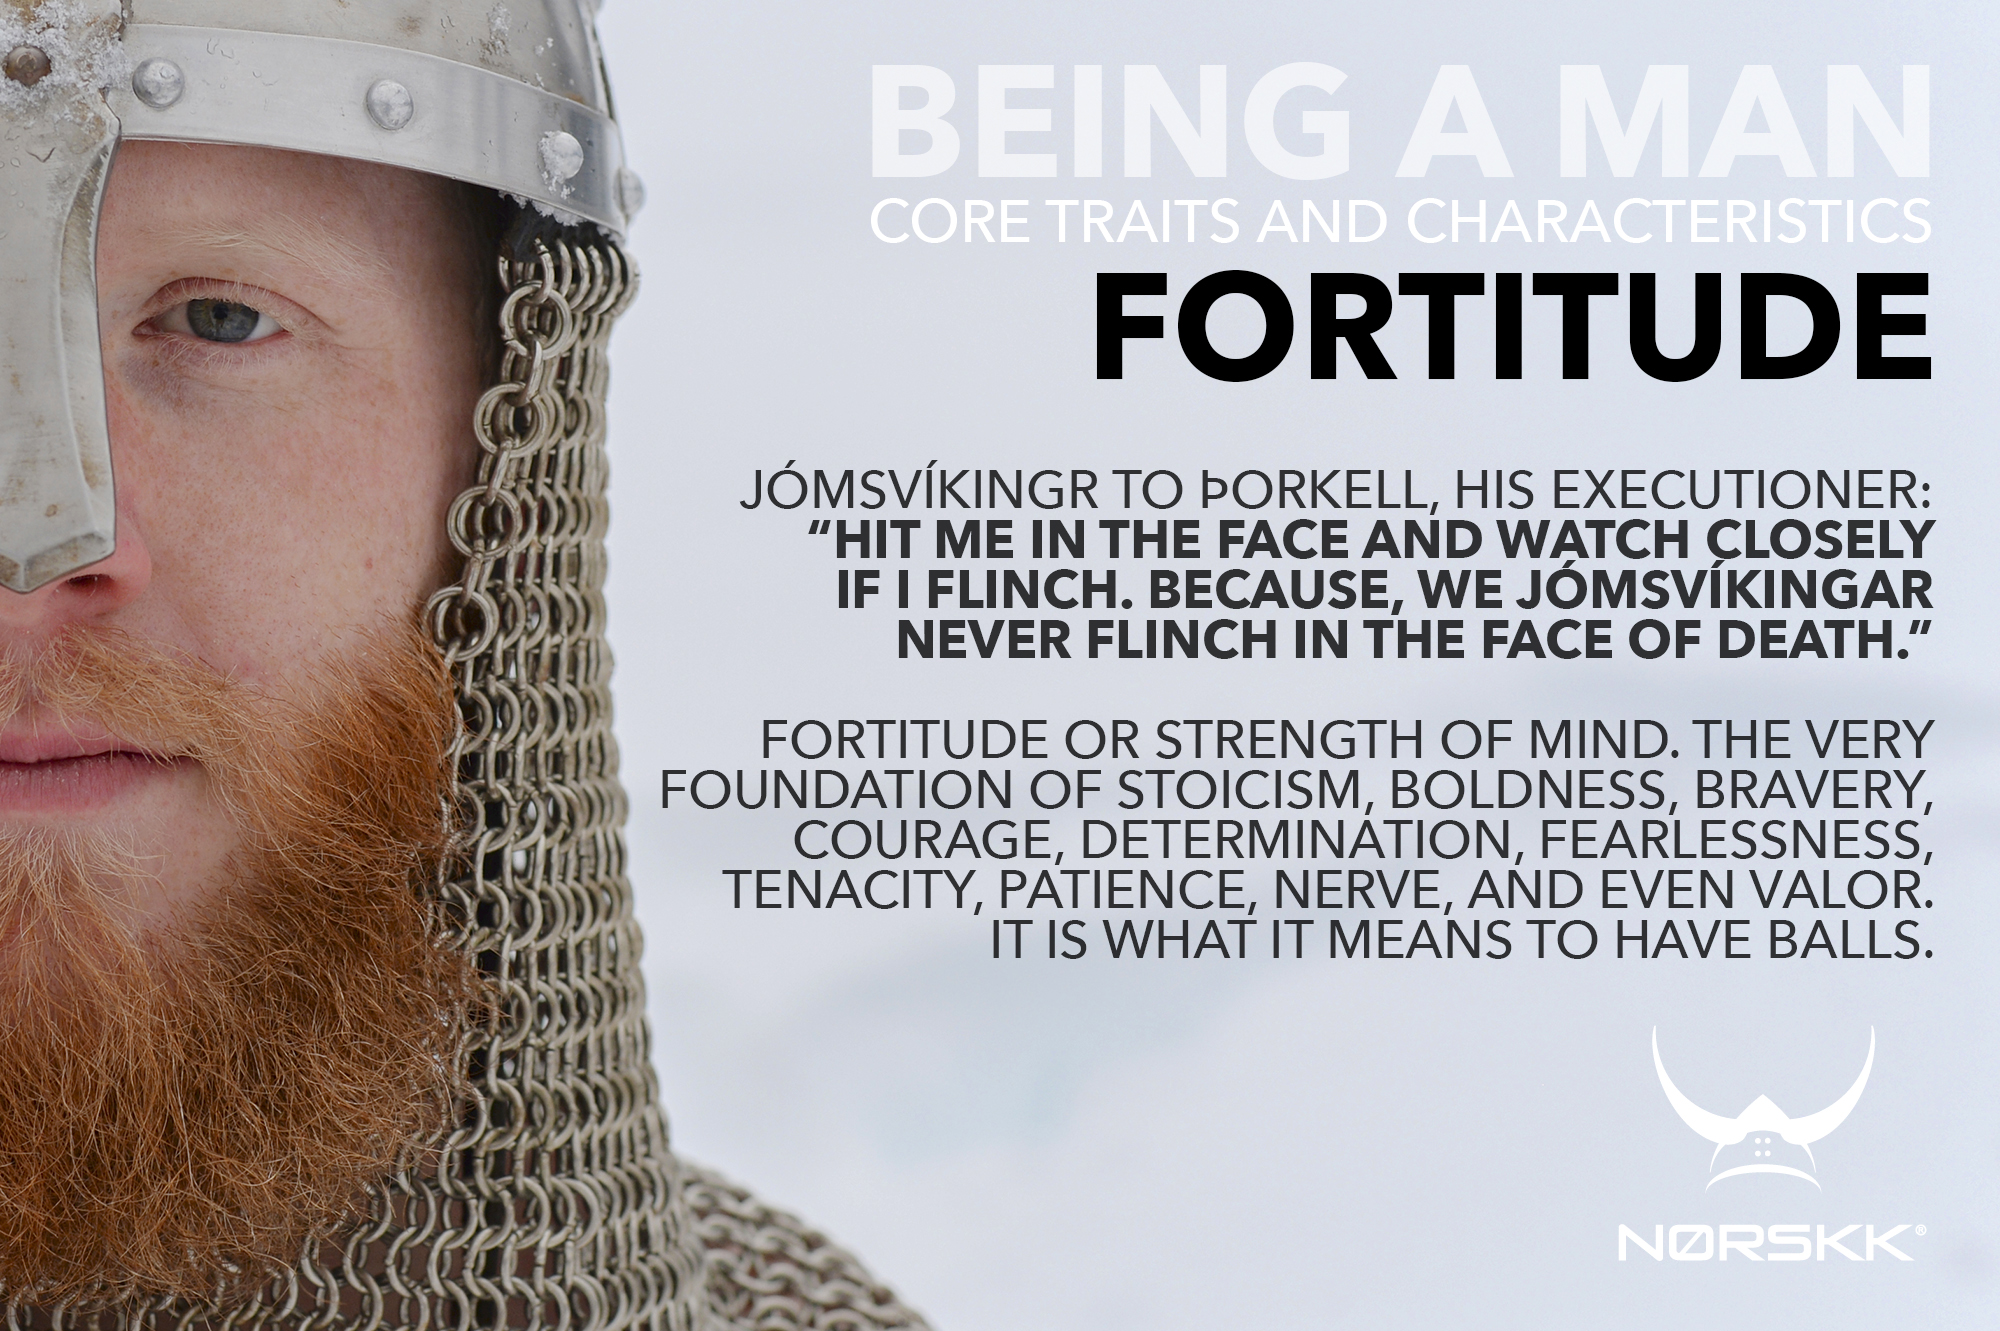 being_a_man_fortitude.jpg